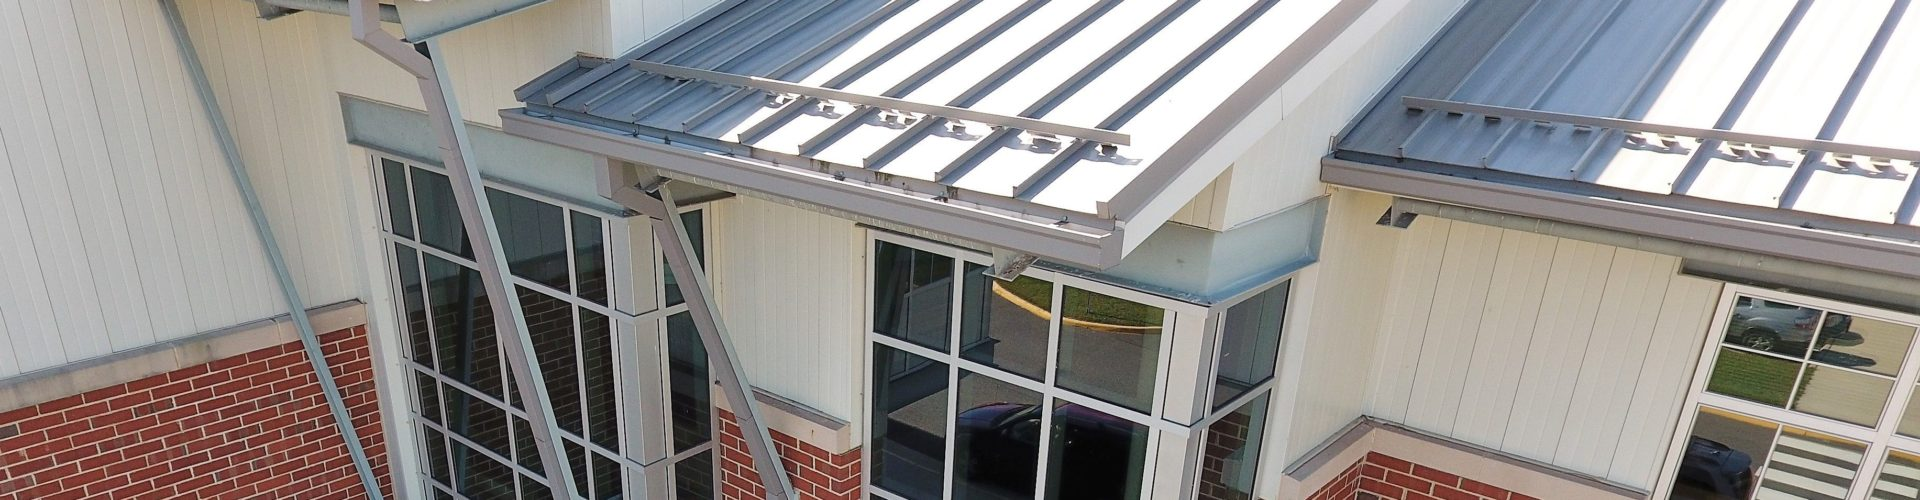 Continuous Gutter Cg70 Cg75 Cg80 Dynaclad Water